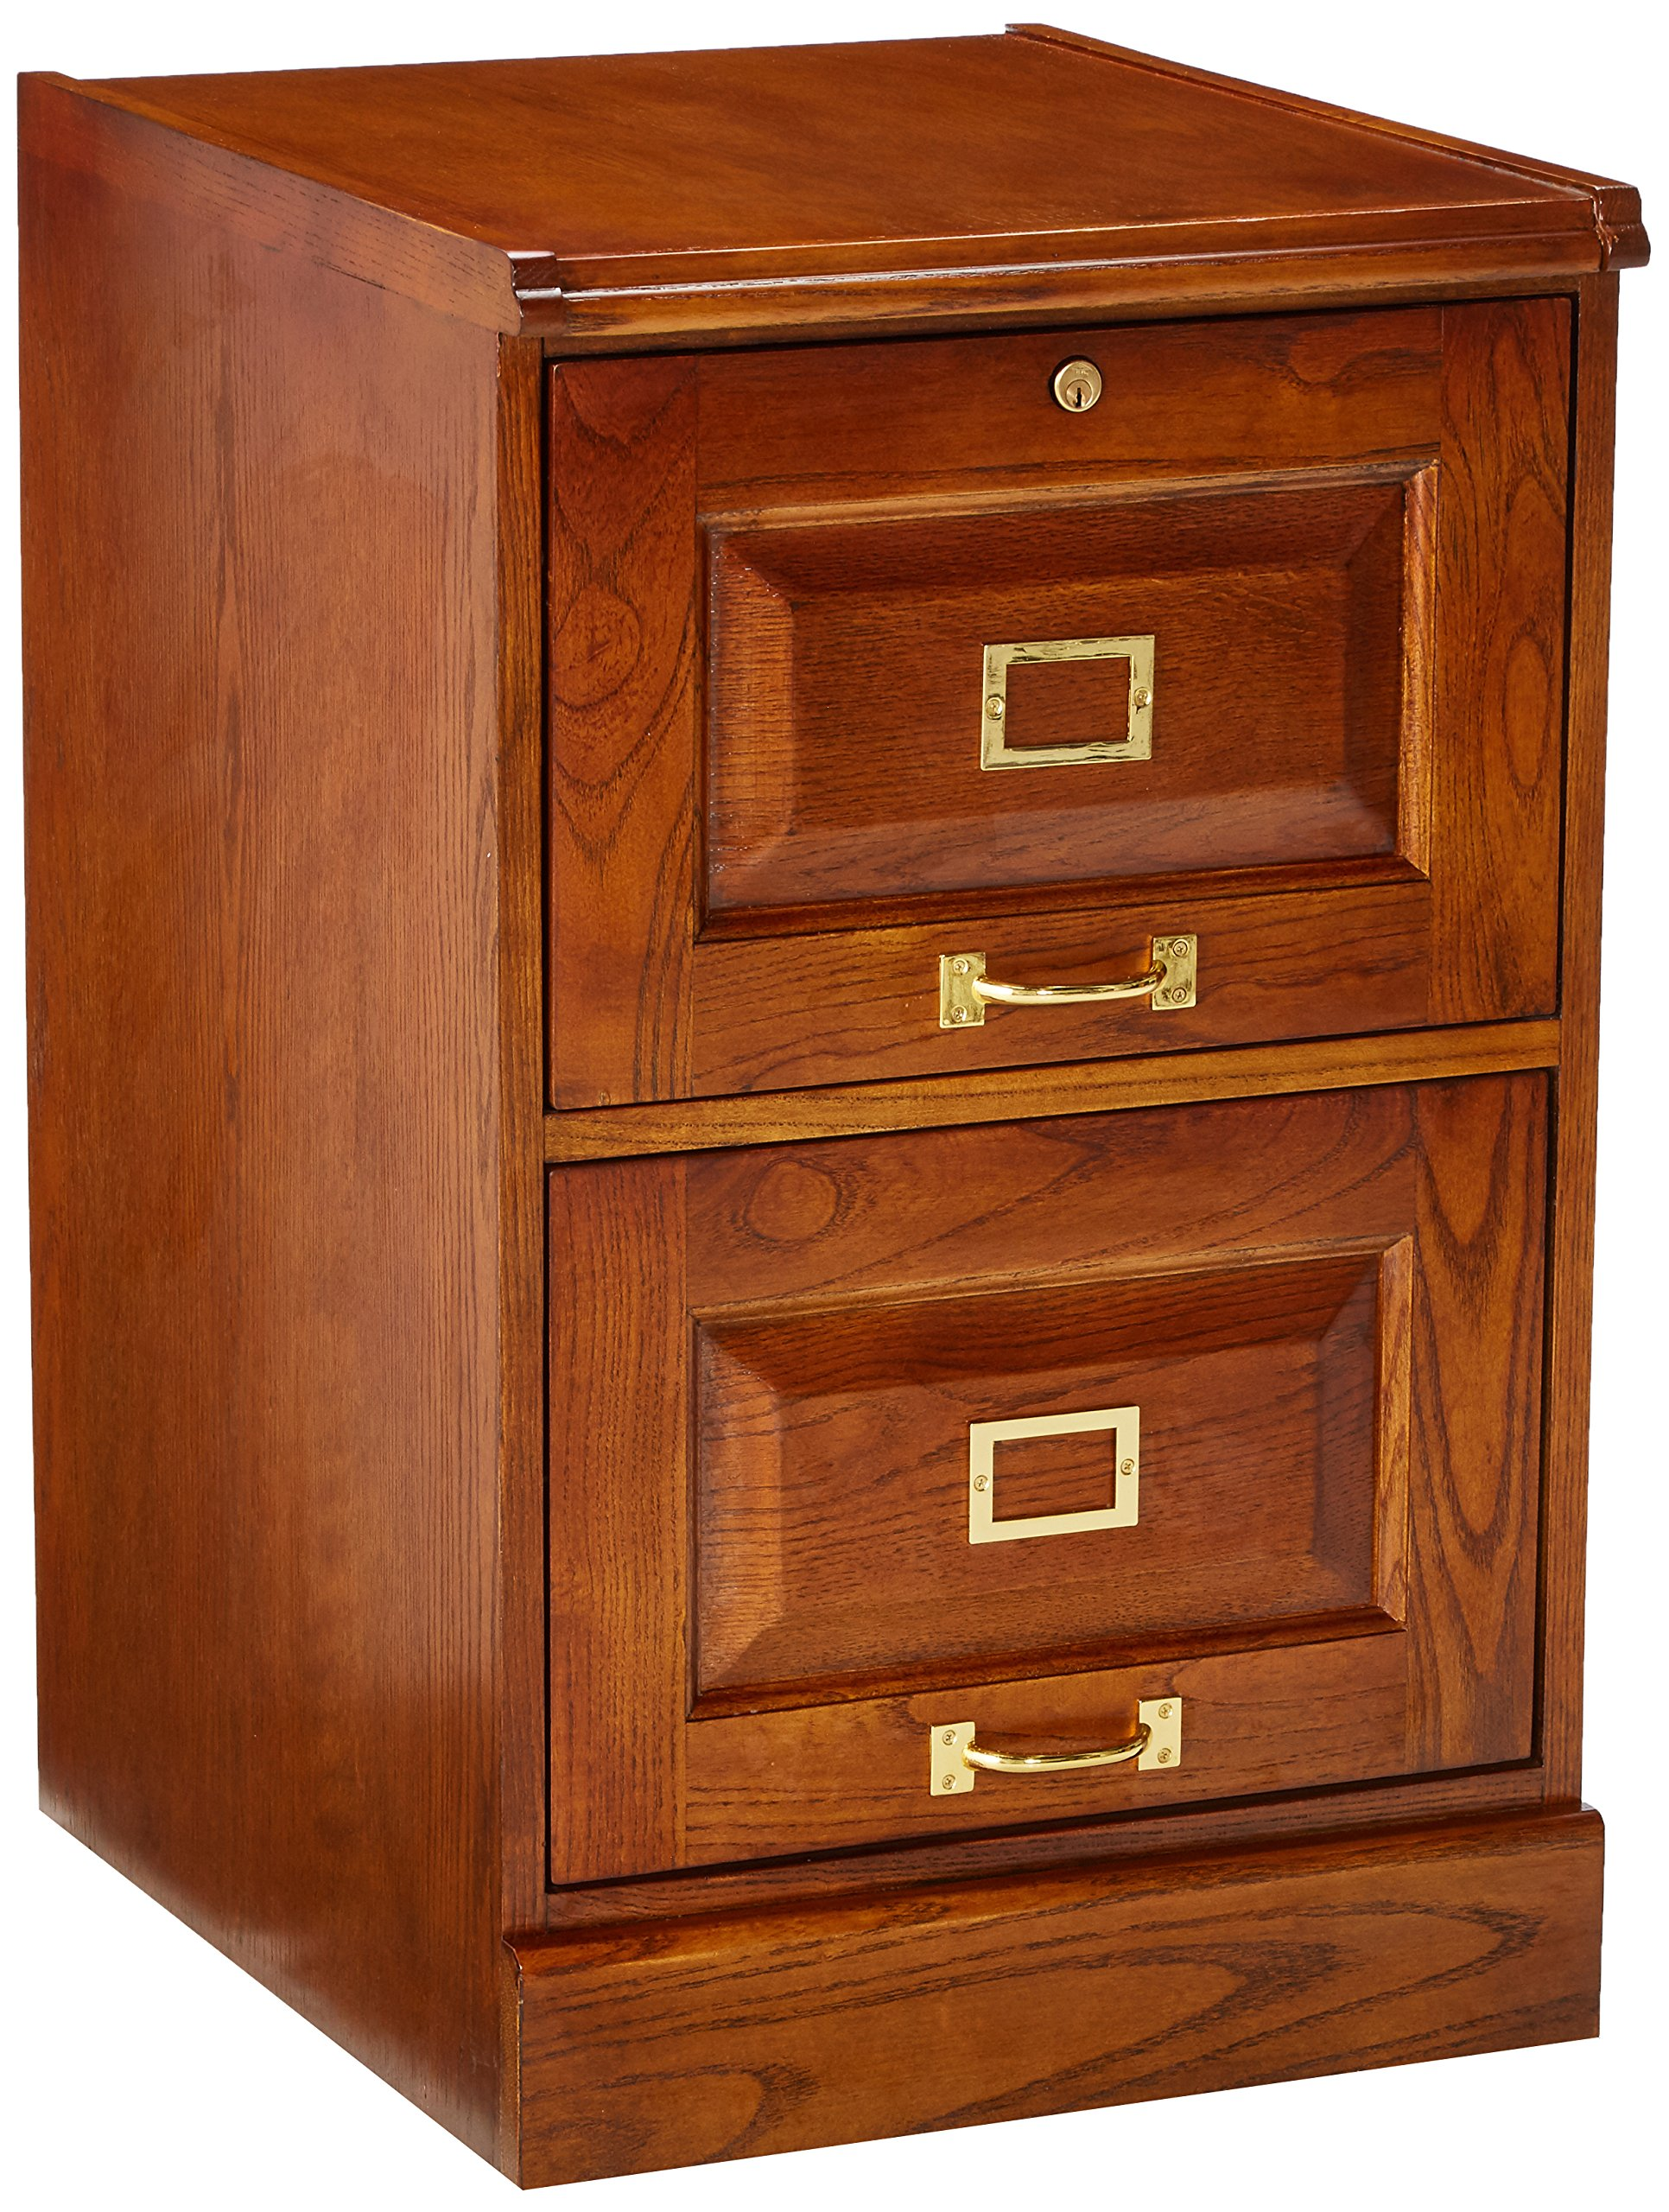 Palmetto 2-Drawer Oak File Cabinet Warm Honey by Coaster Home Furnishings